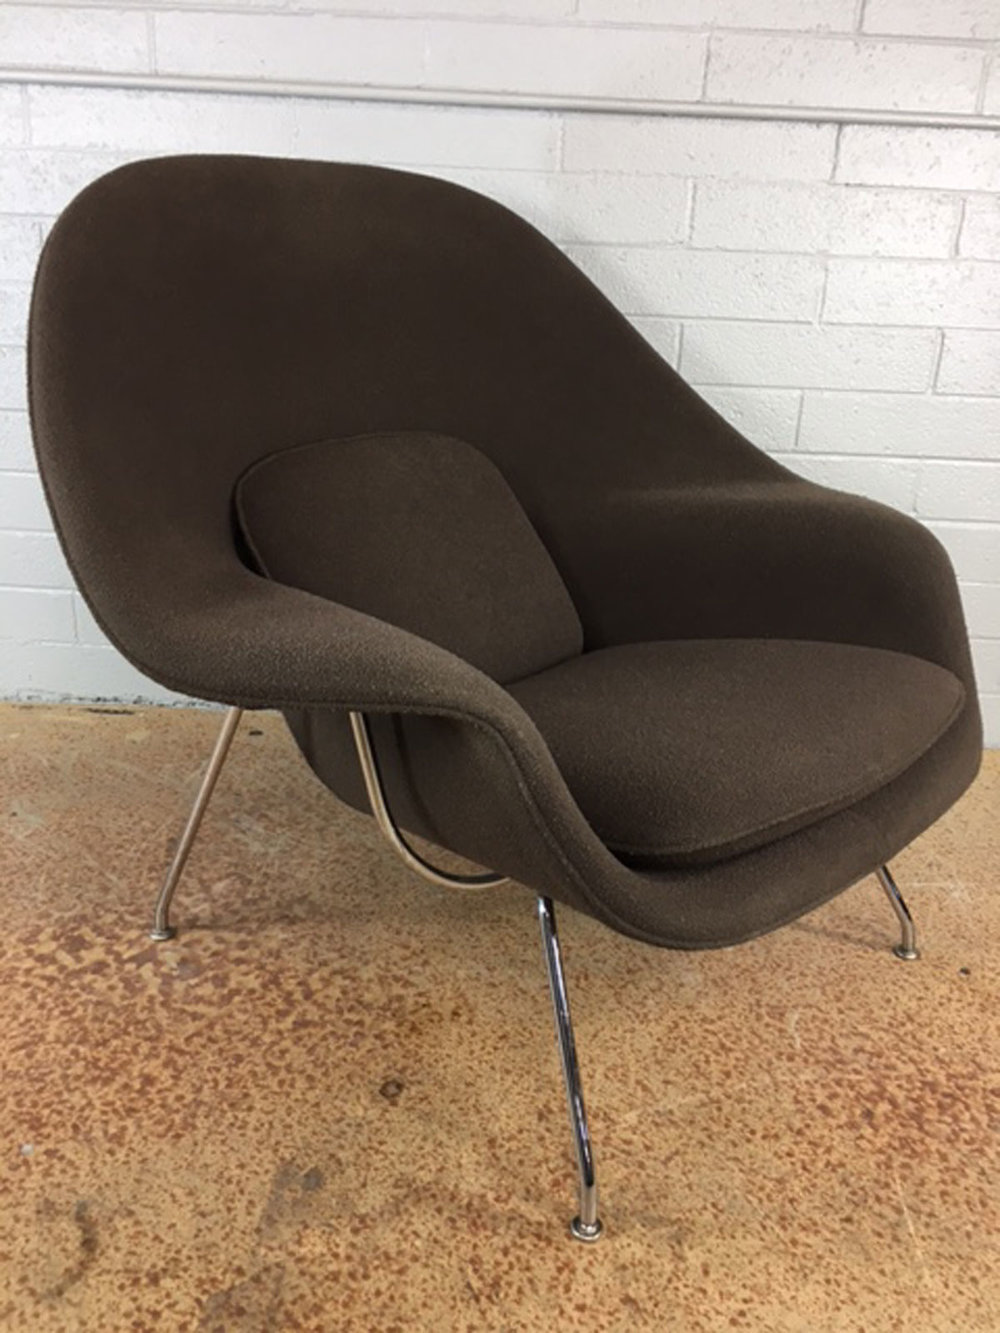 Eero Saarinen Womb Chair By Knoll